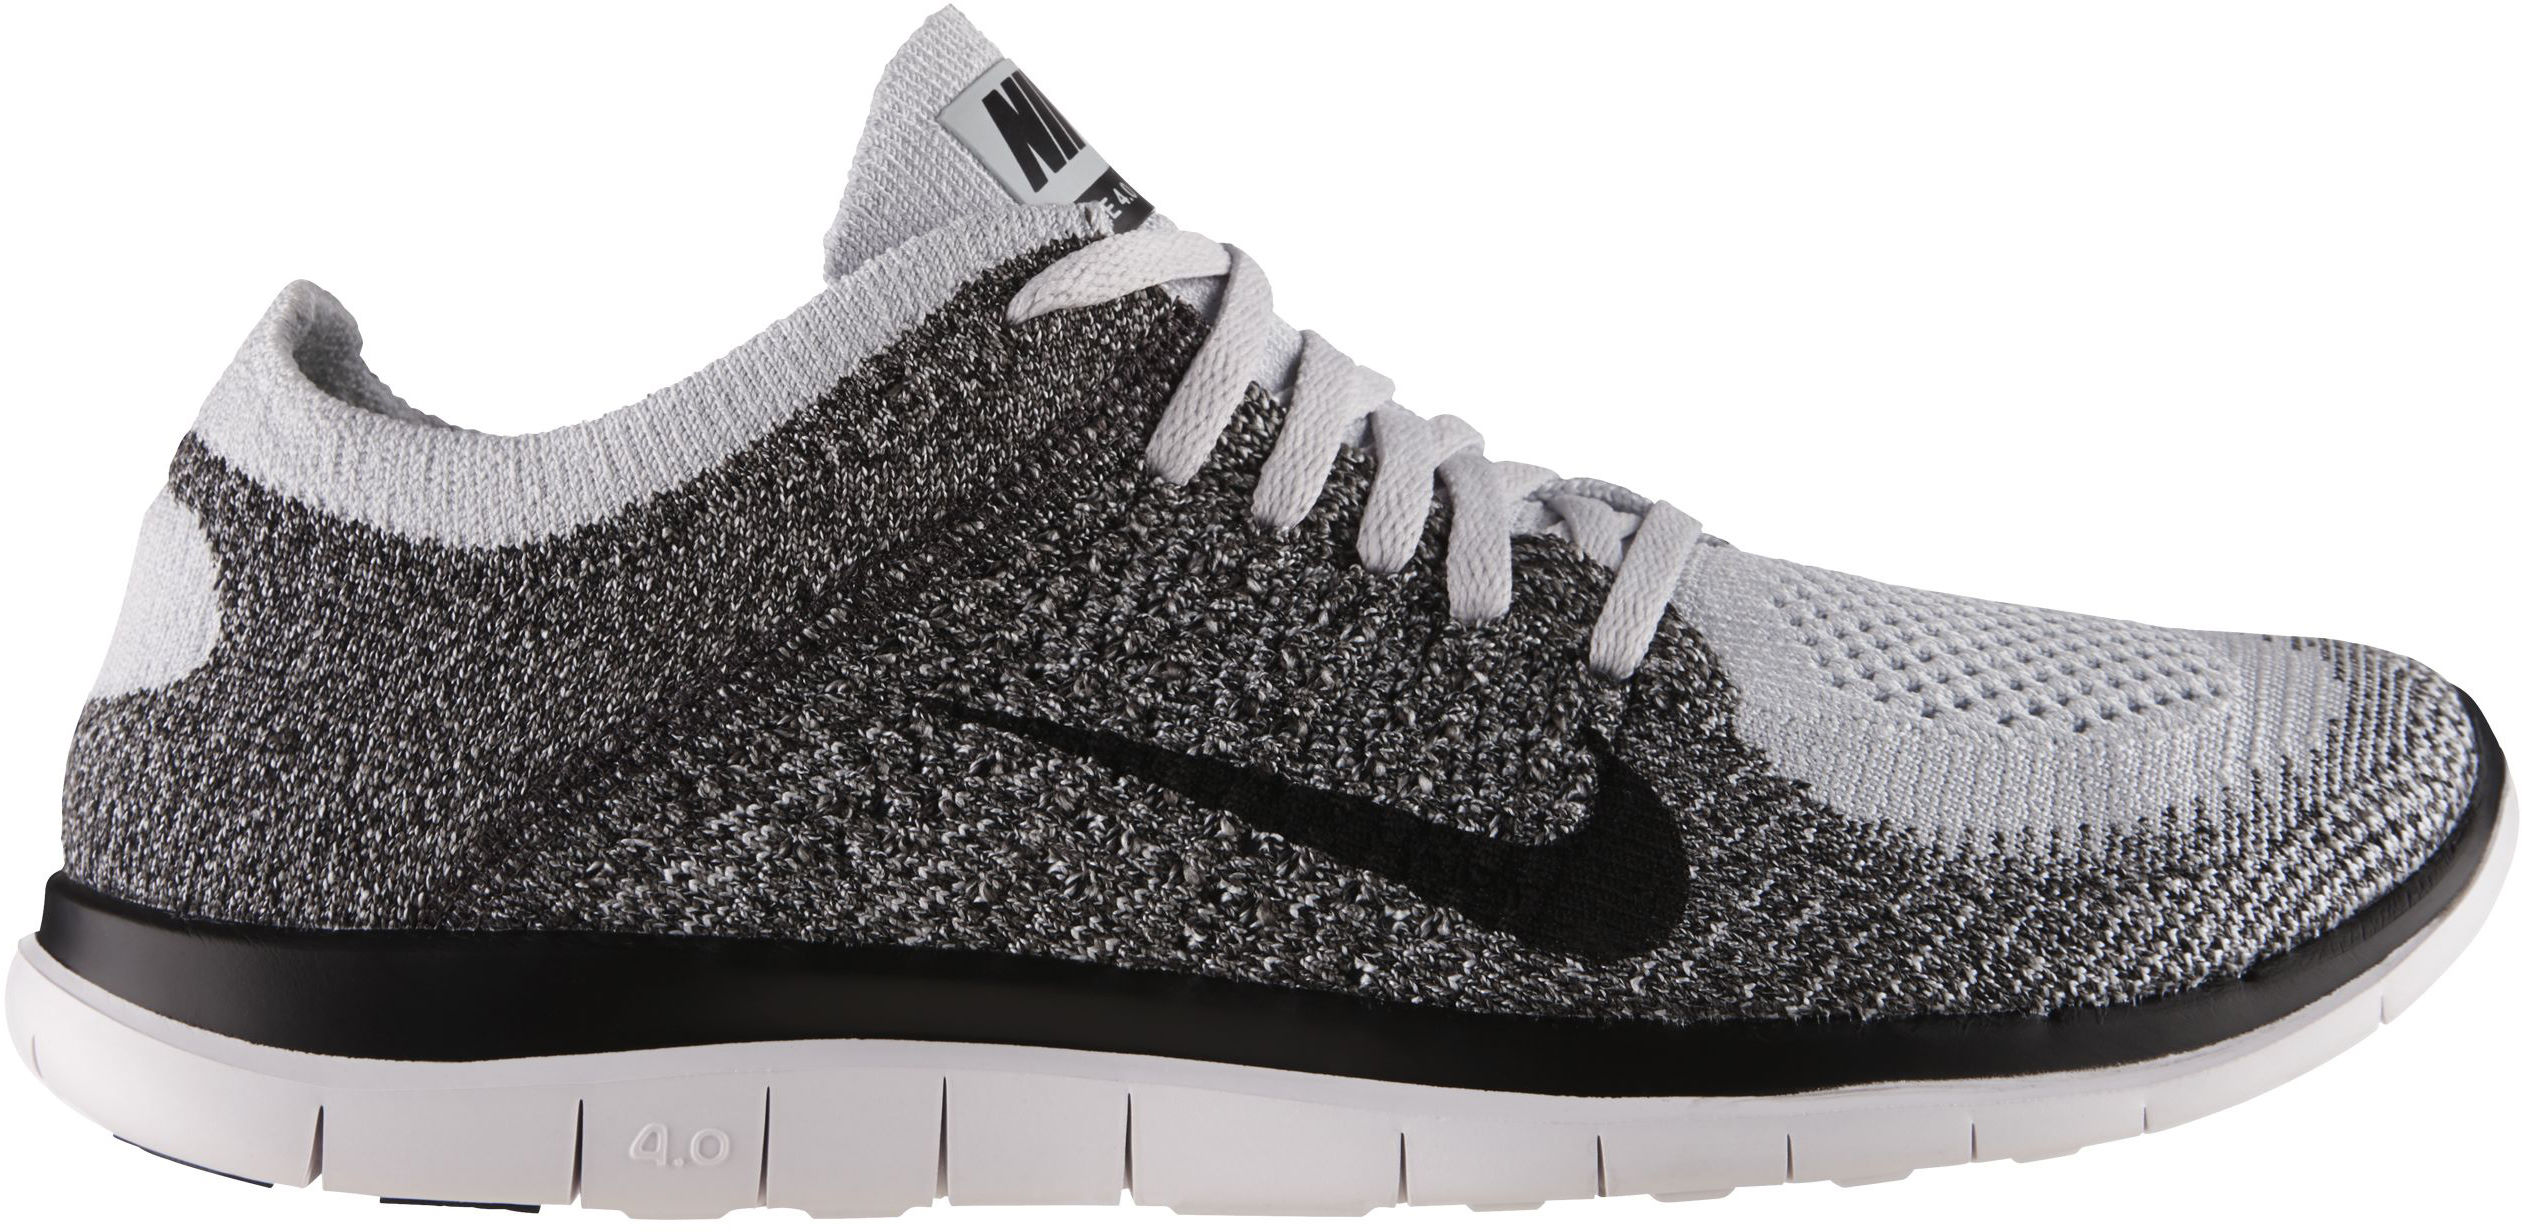 nike 4 0 flyknit. nike free 4.0 flyknit shoes - sp15 4 0